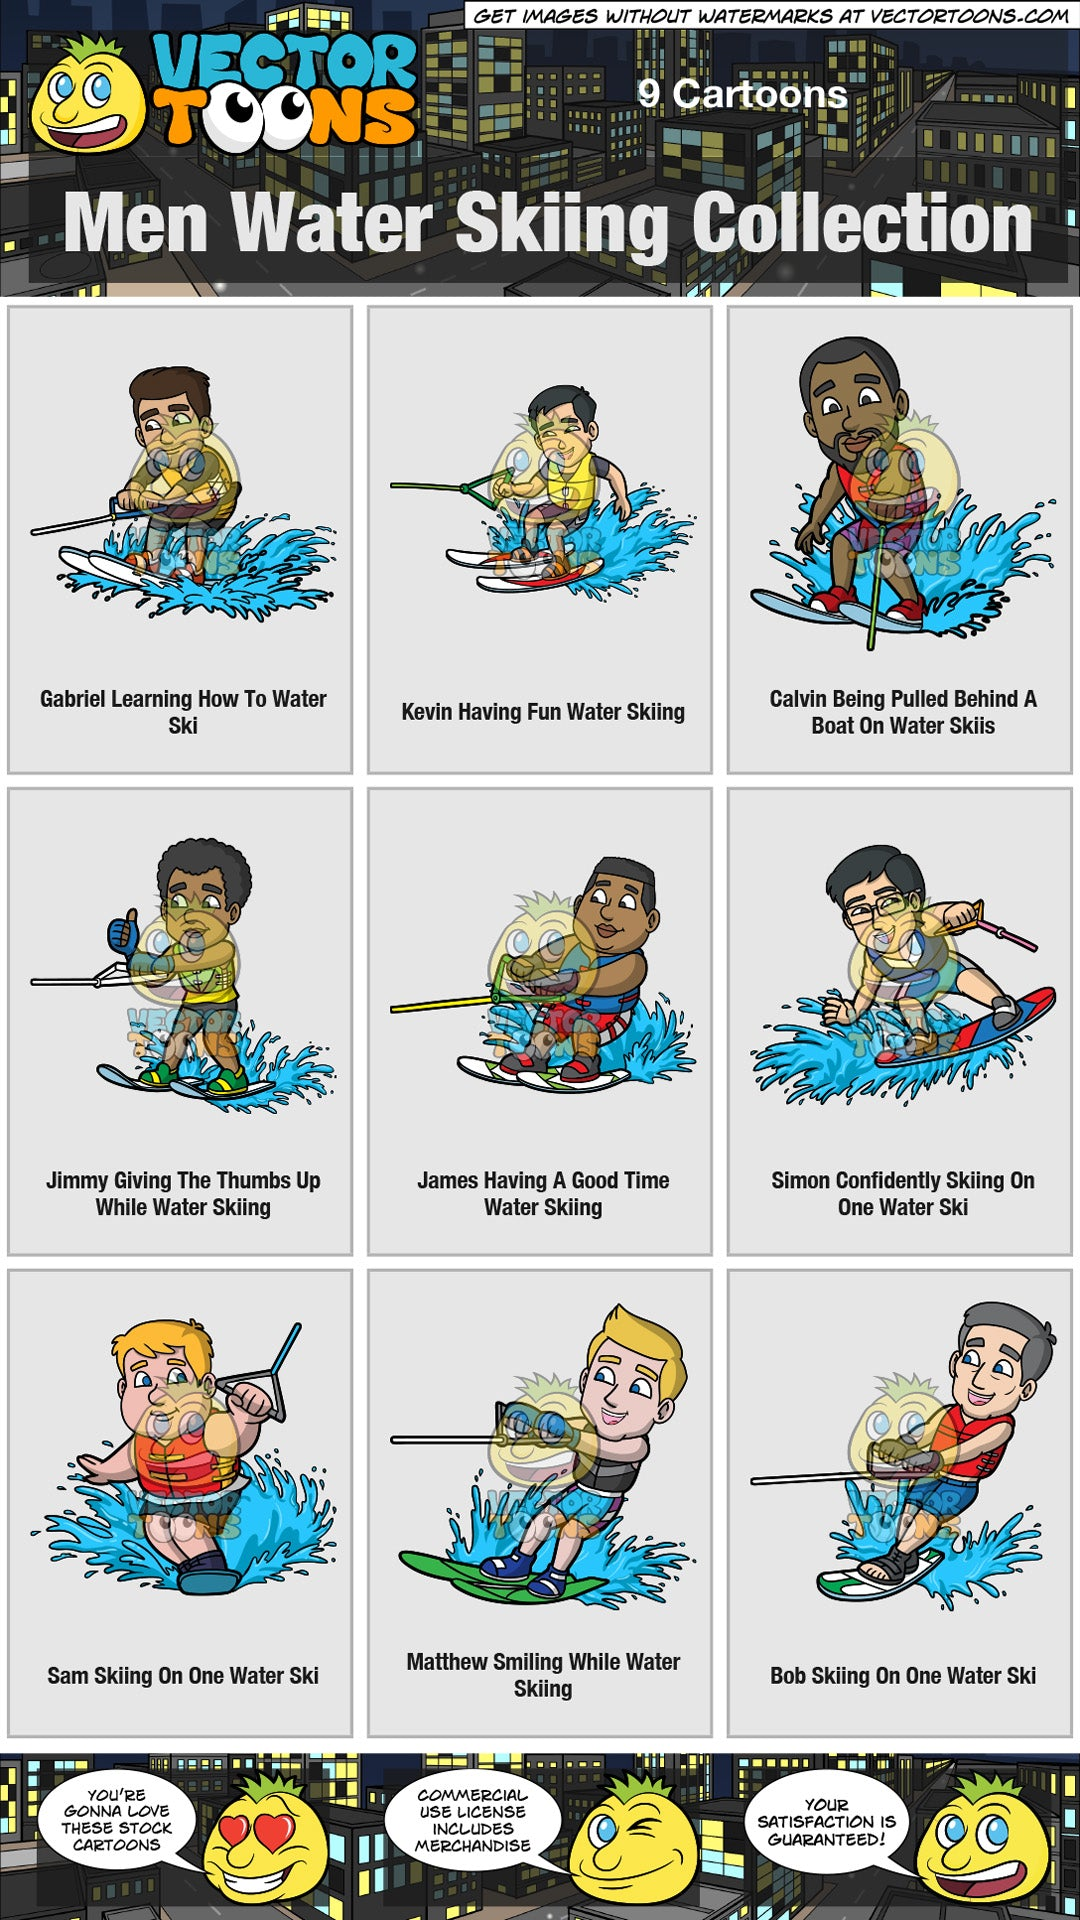 Men Water Skiing Collection